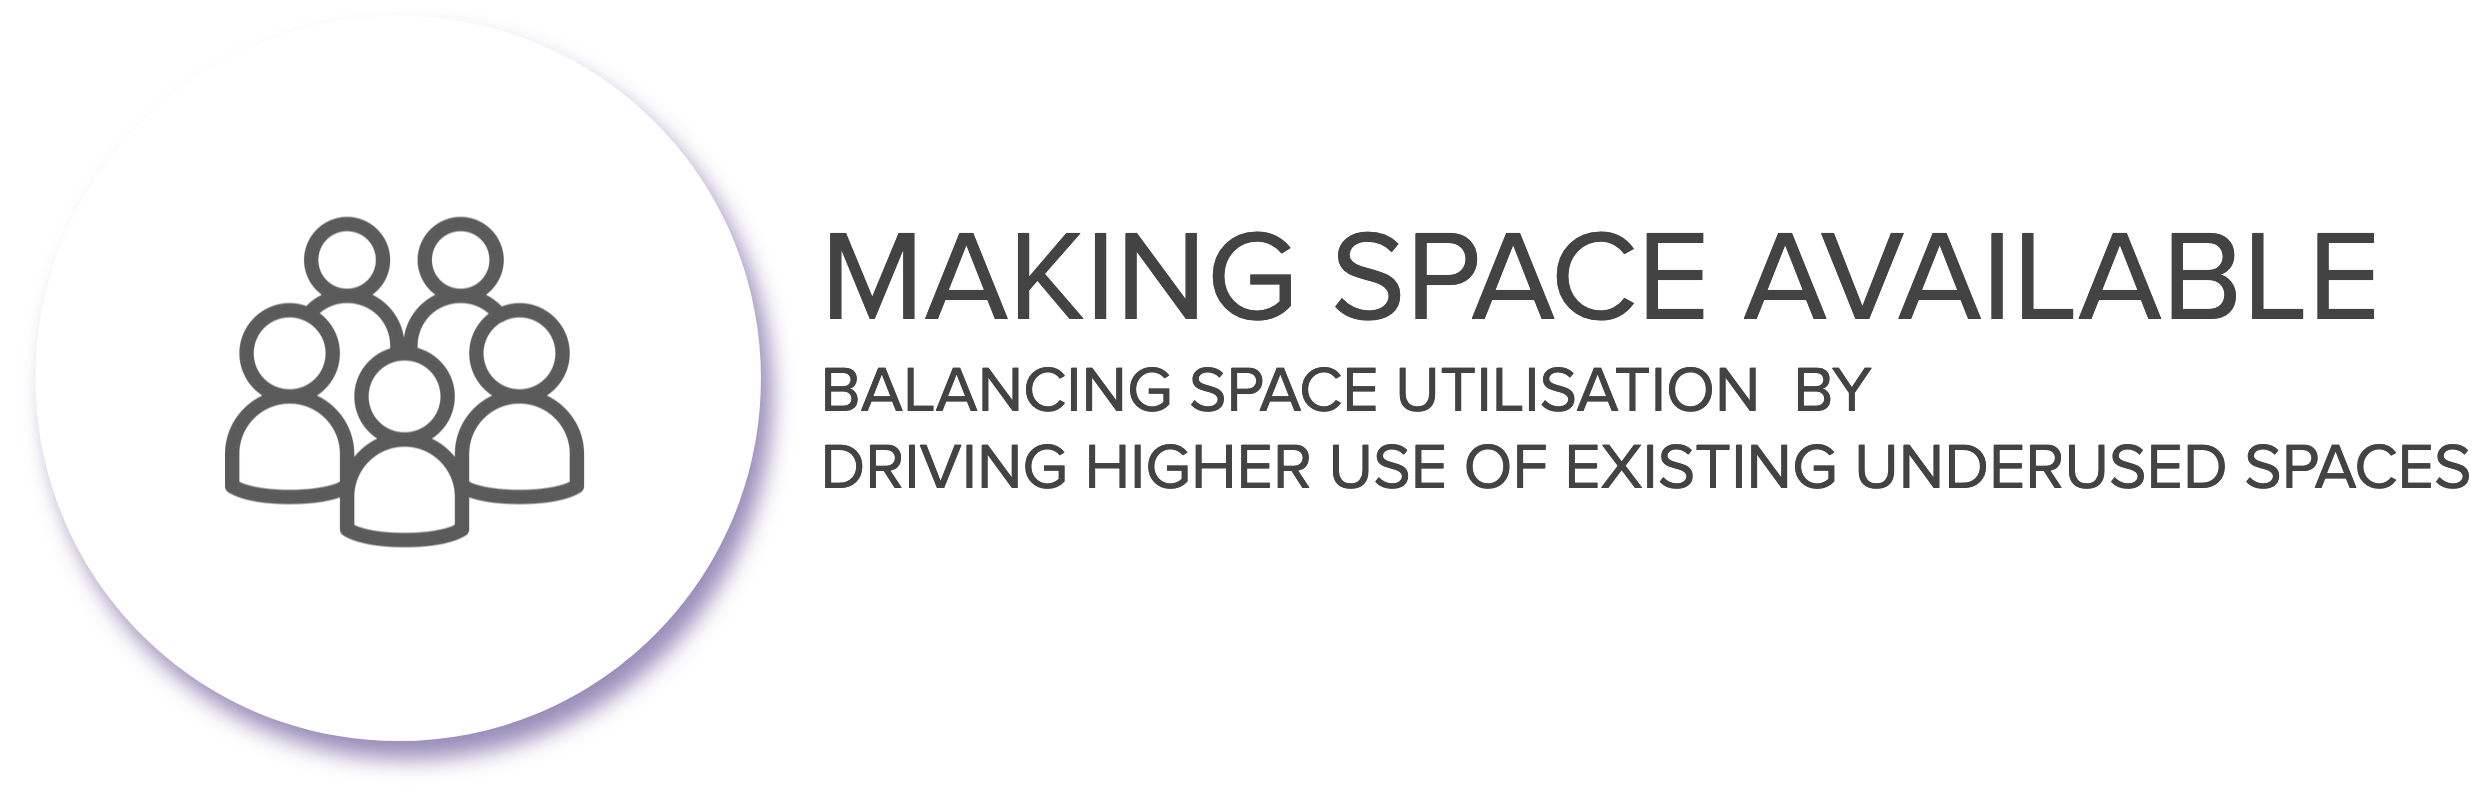 making space avilable.png